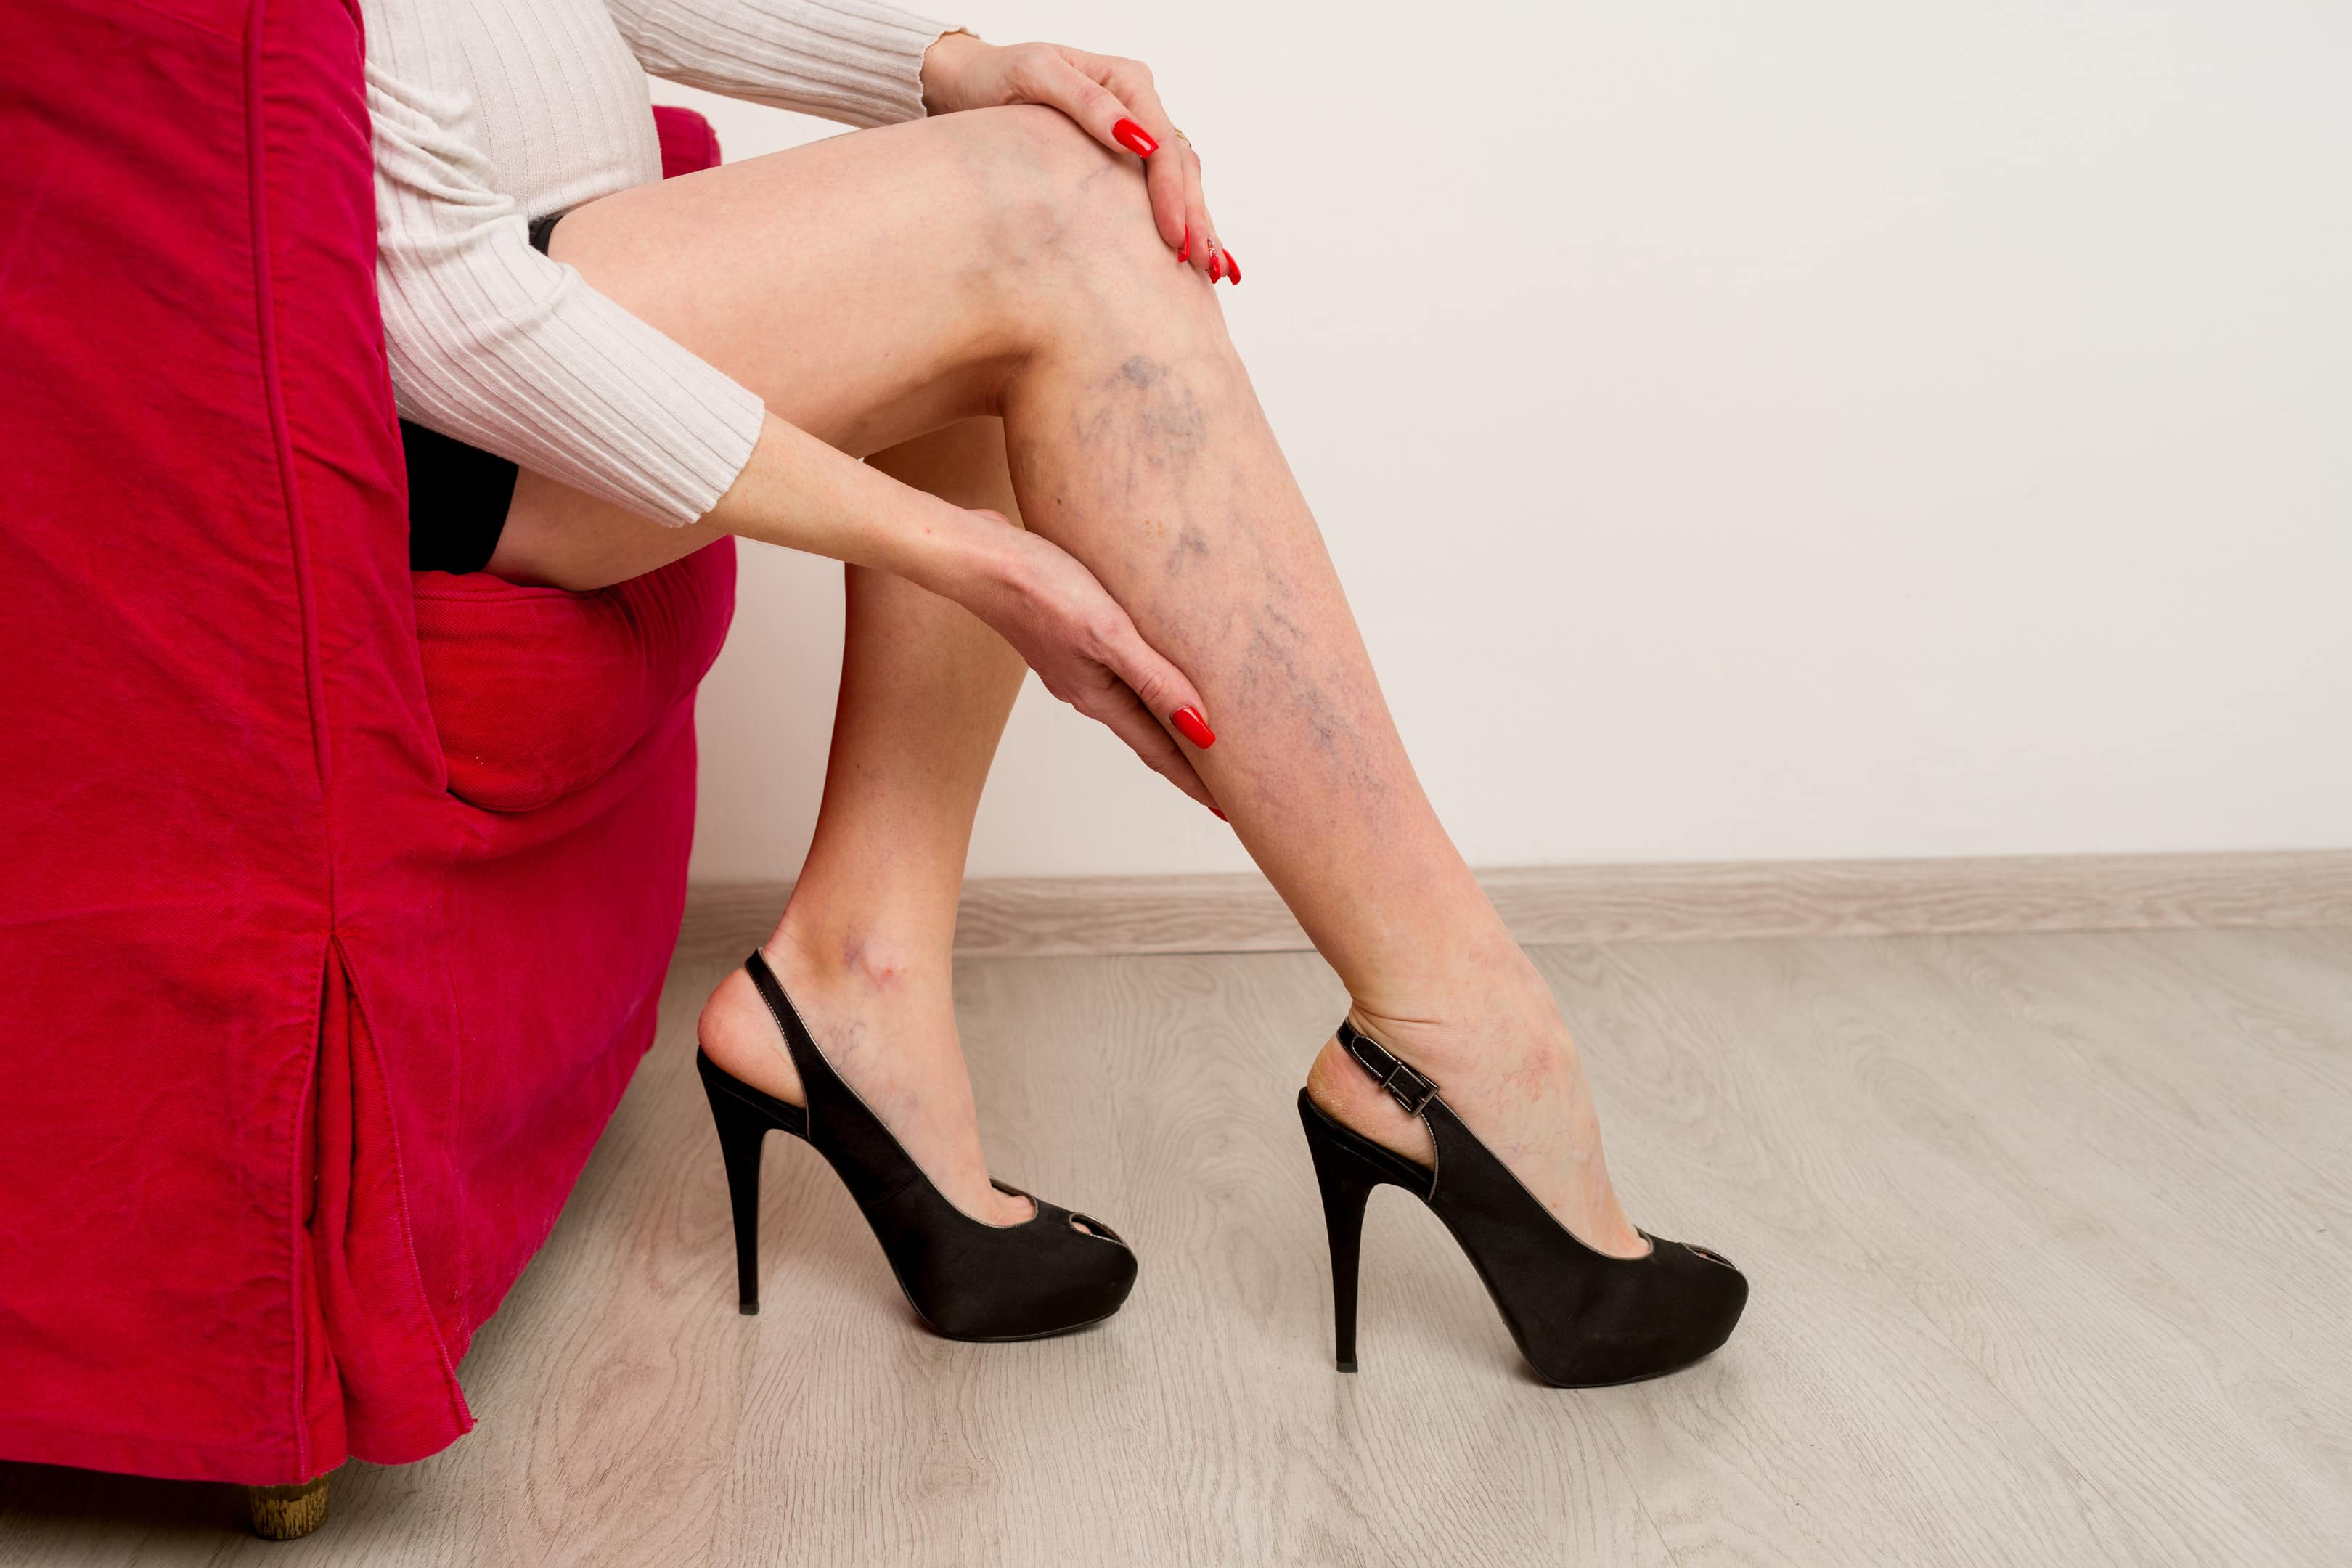 Female legs with painful varicose veins